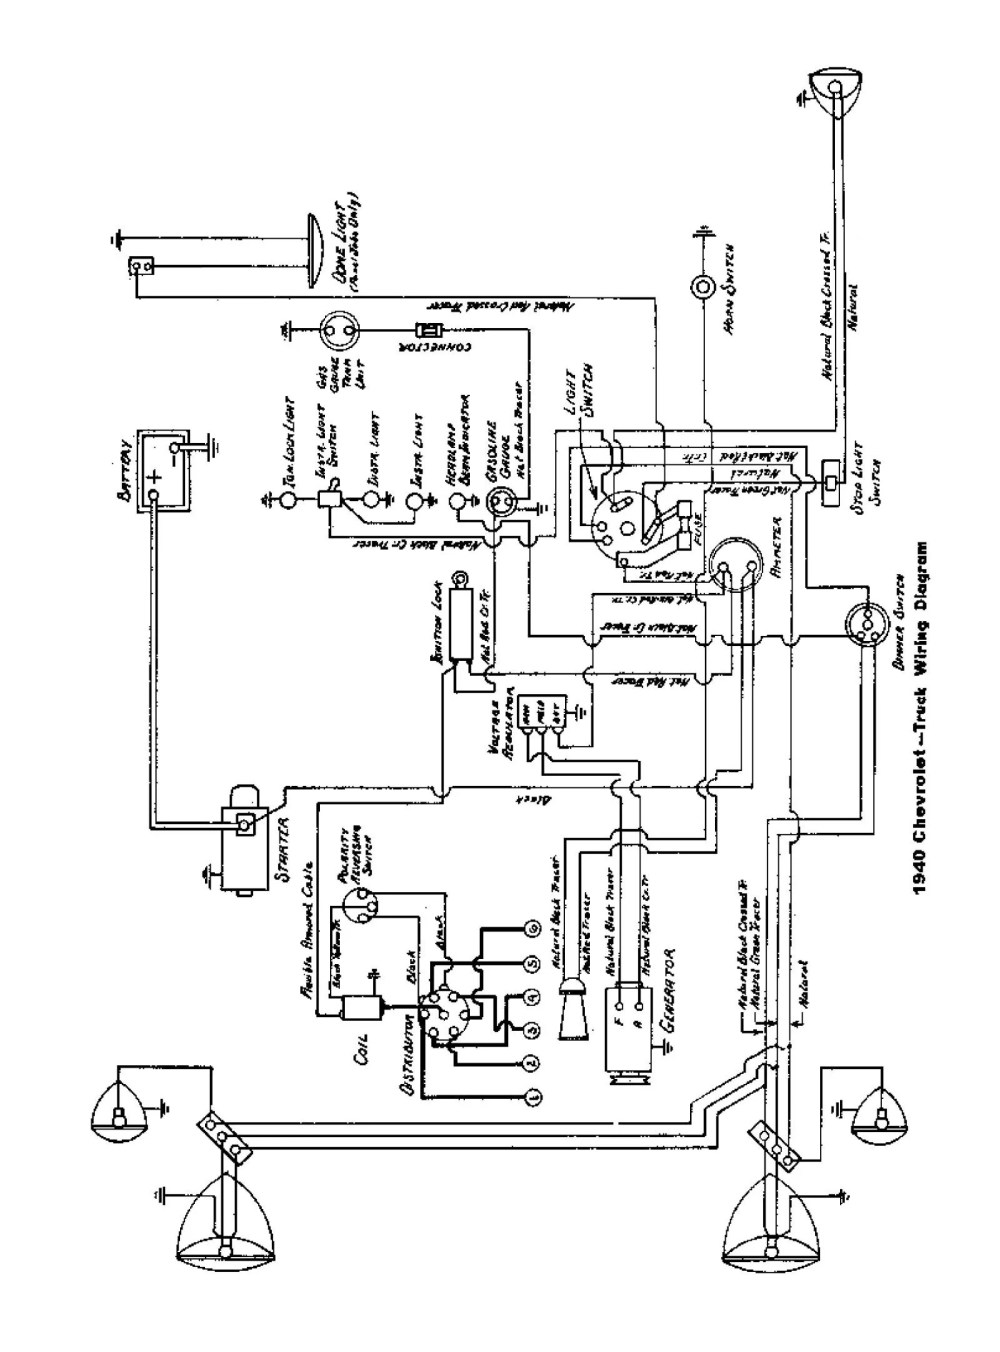 medium resolution of wrg 2586 1946 chevy pickup wiring diagram for 1946 international harvester truck wiring harness